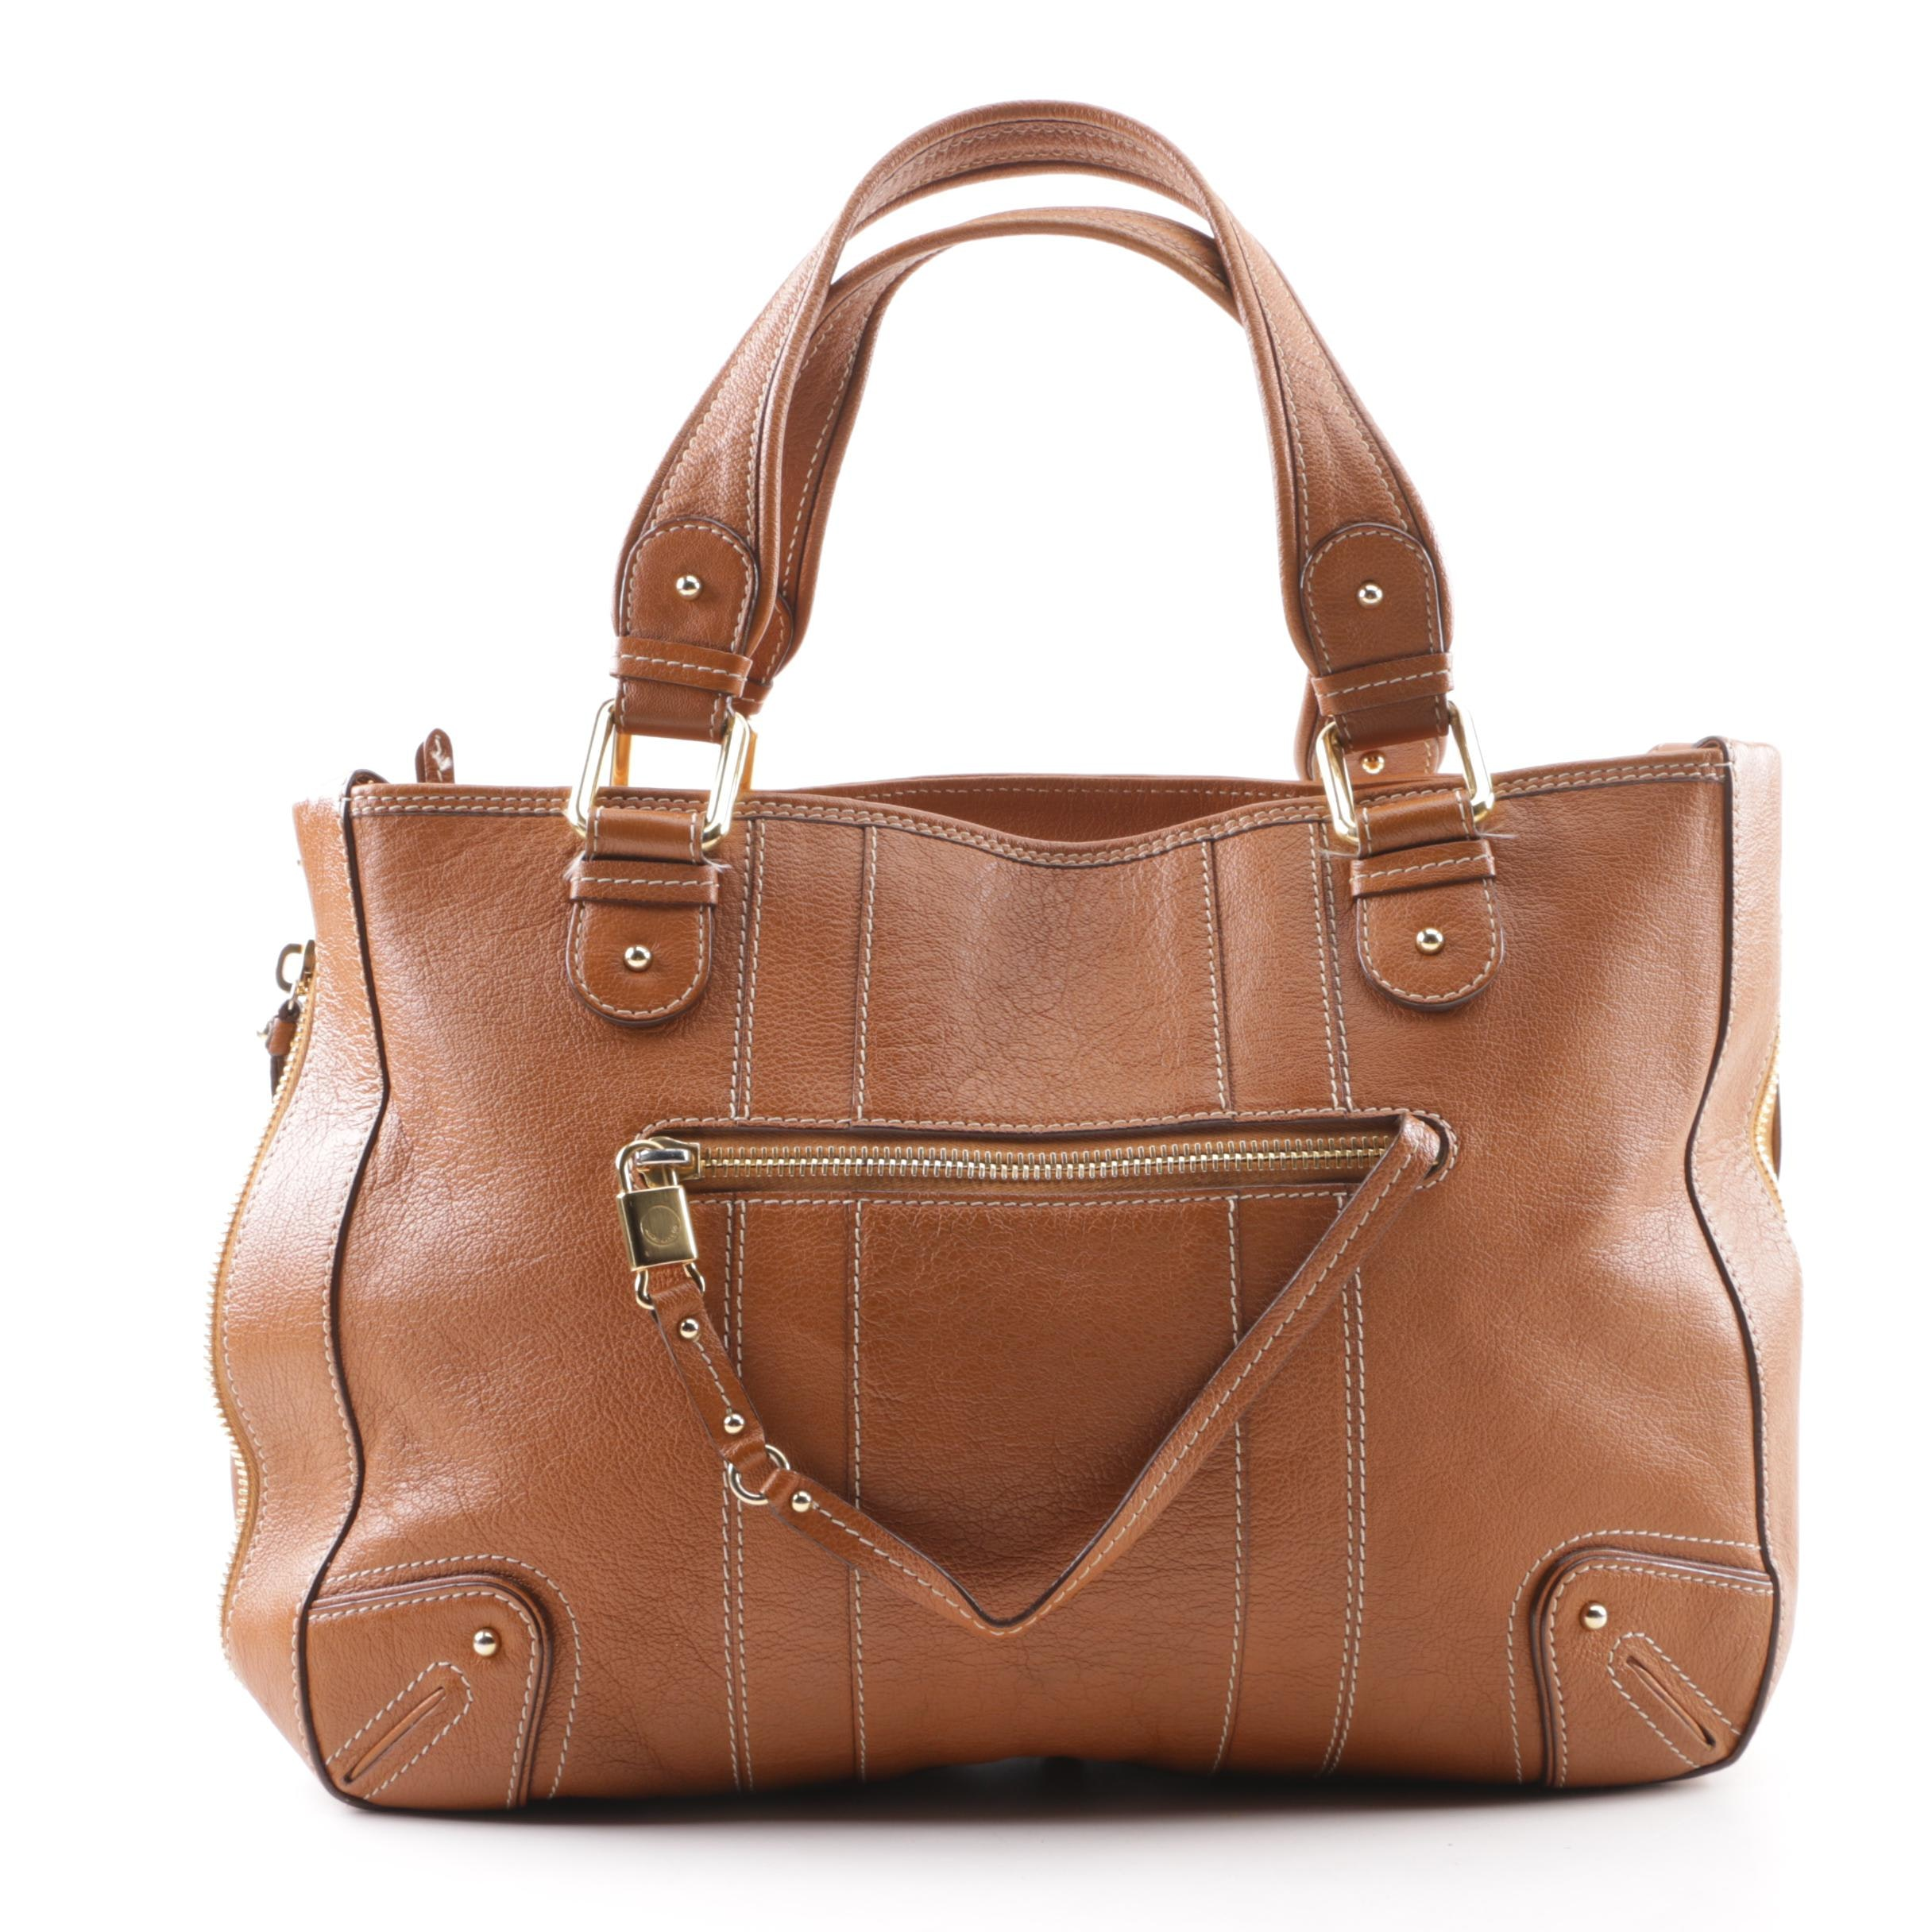 Marc Jacobs Brown Leather Zip-Around Expandable Satchel